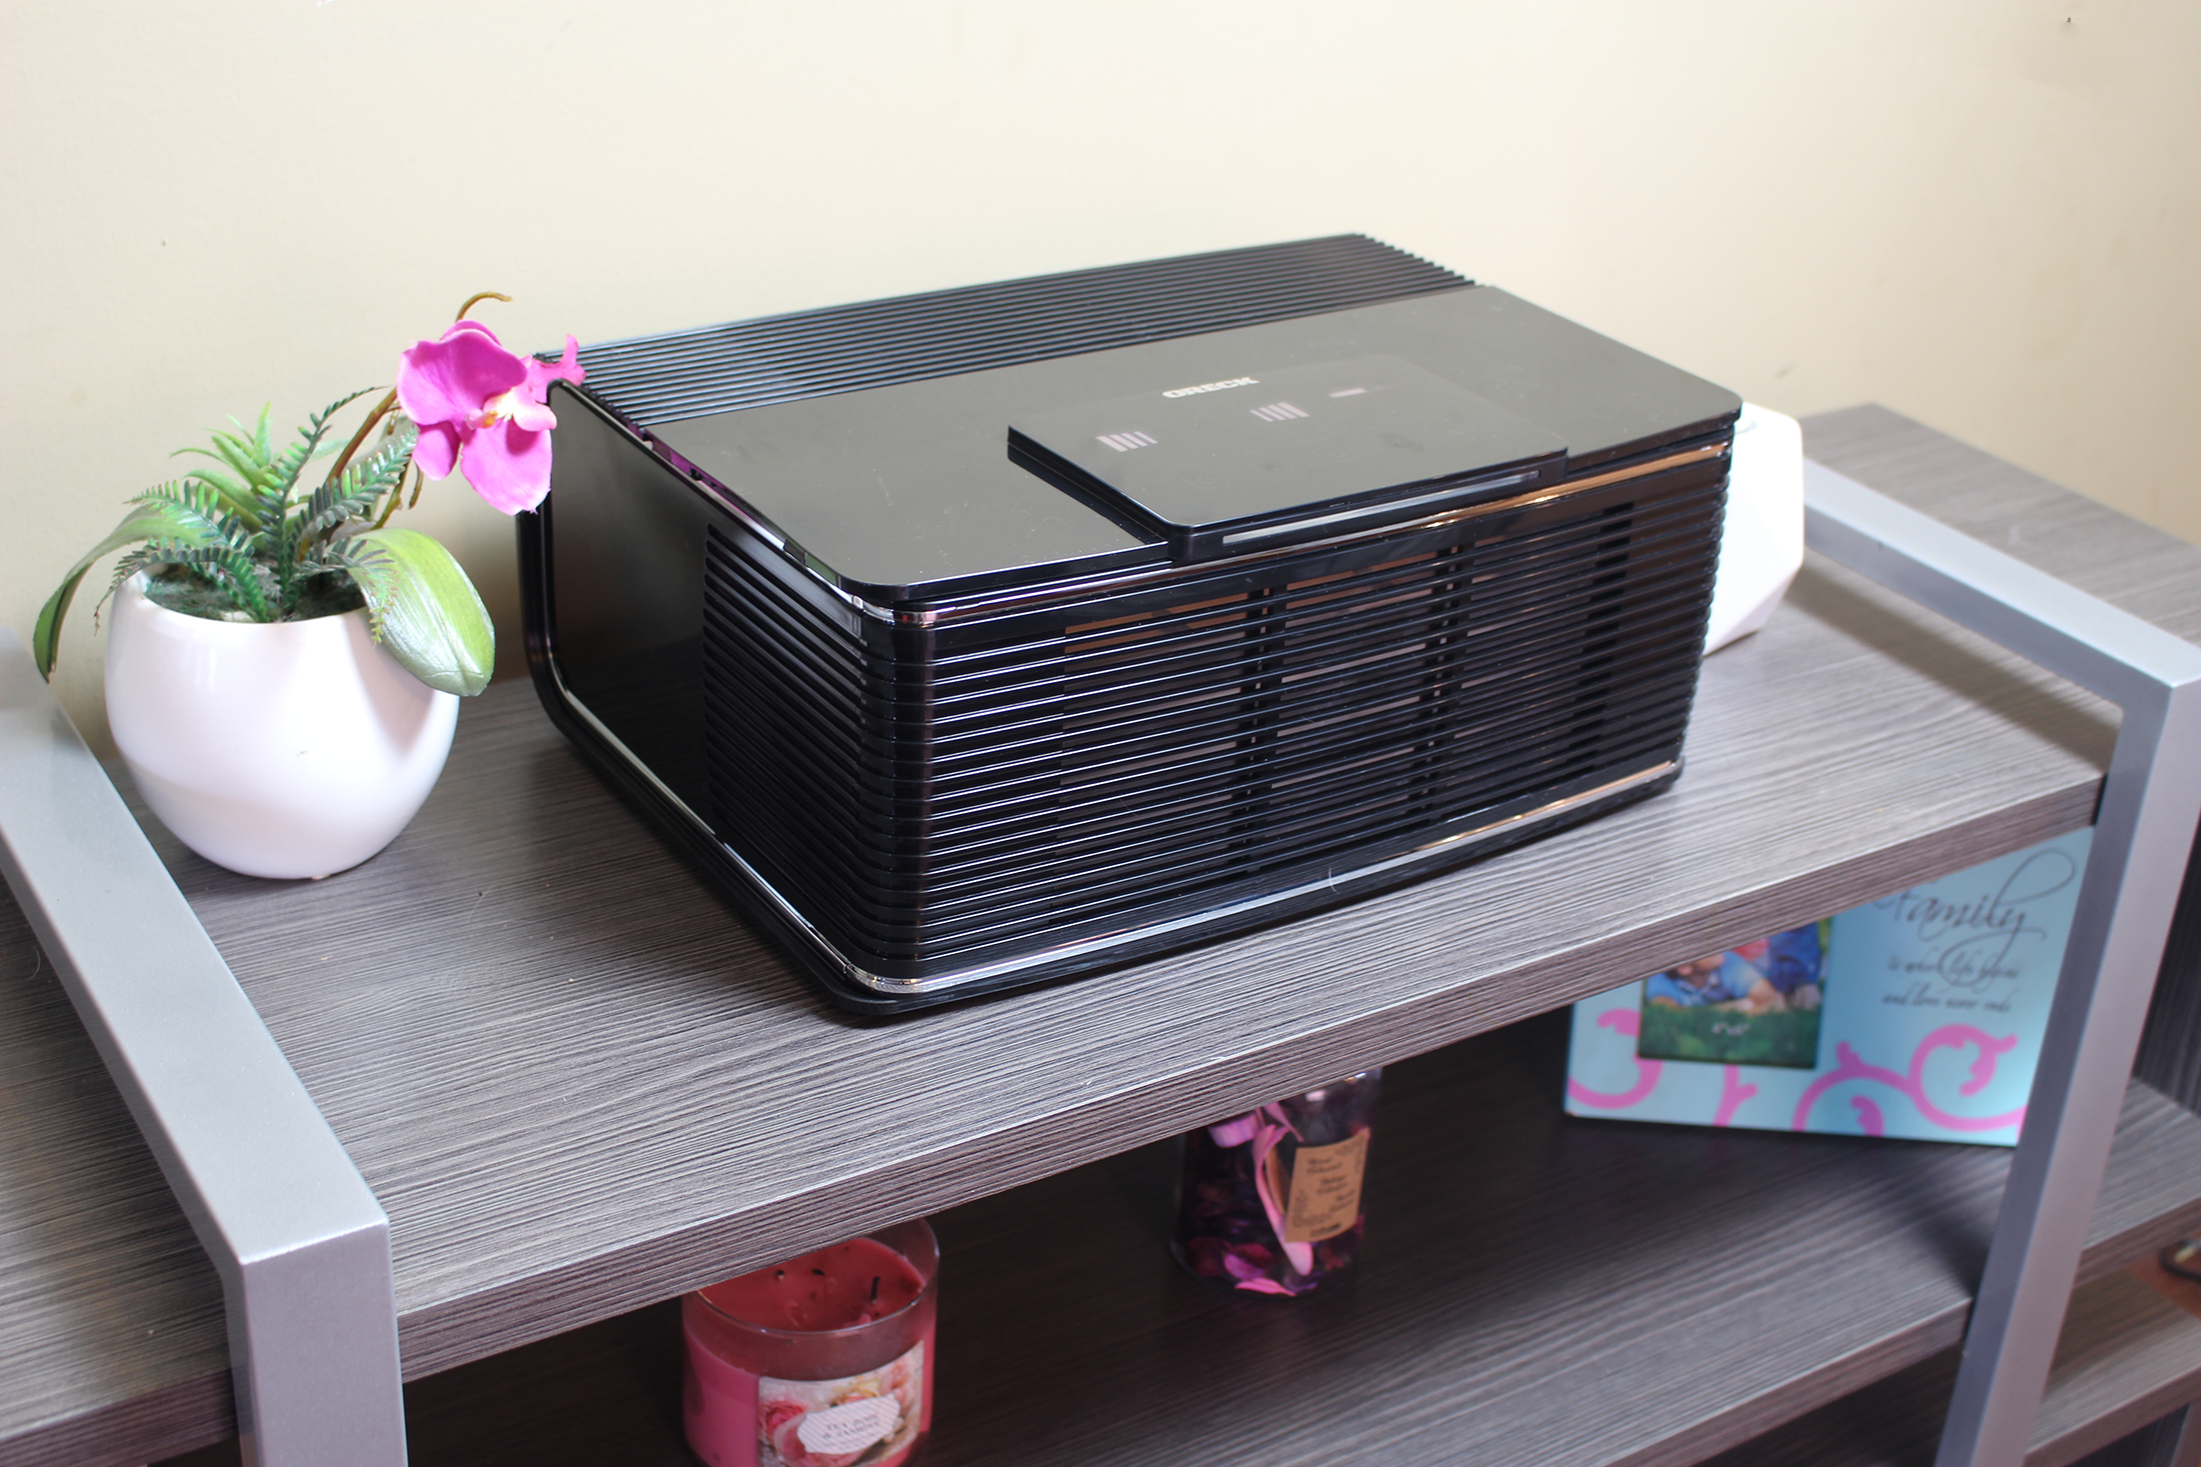 Keep Your Home Fresh With the Oreck Tru Response Air Purifier + GIVEAWAY!